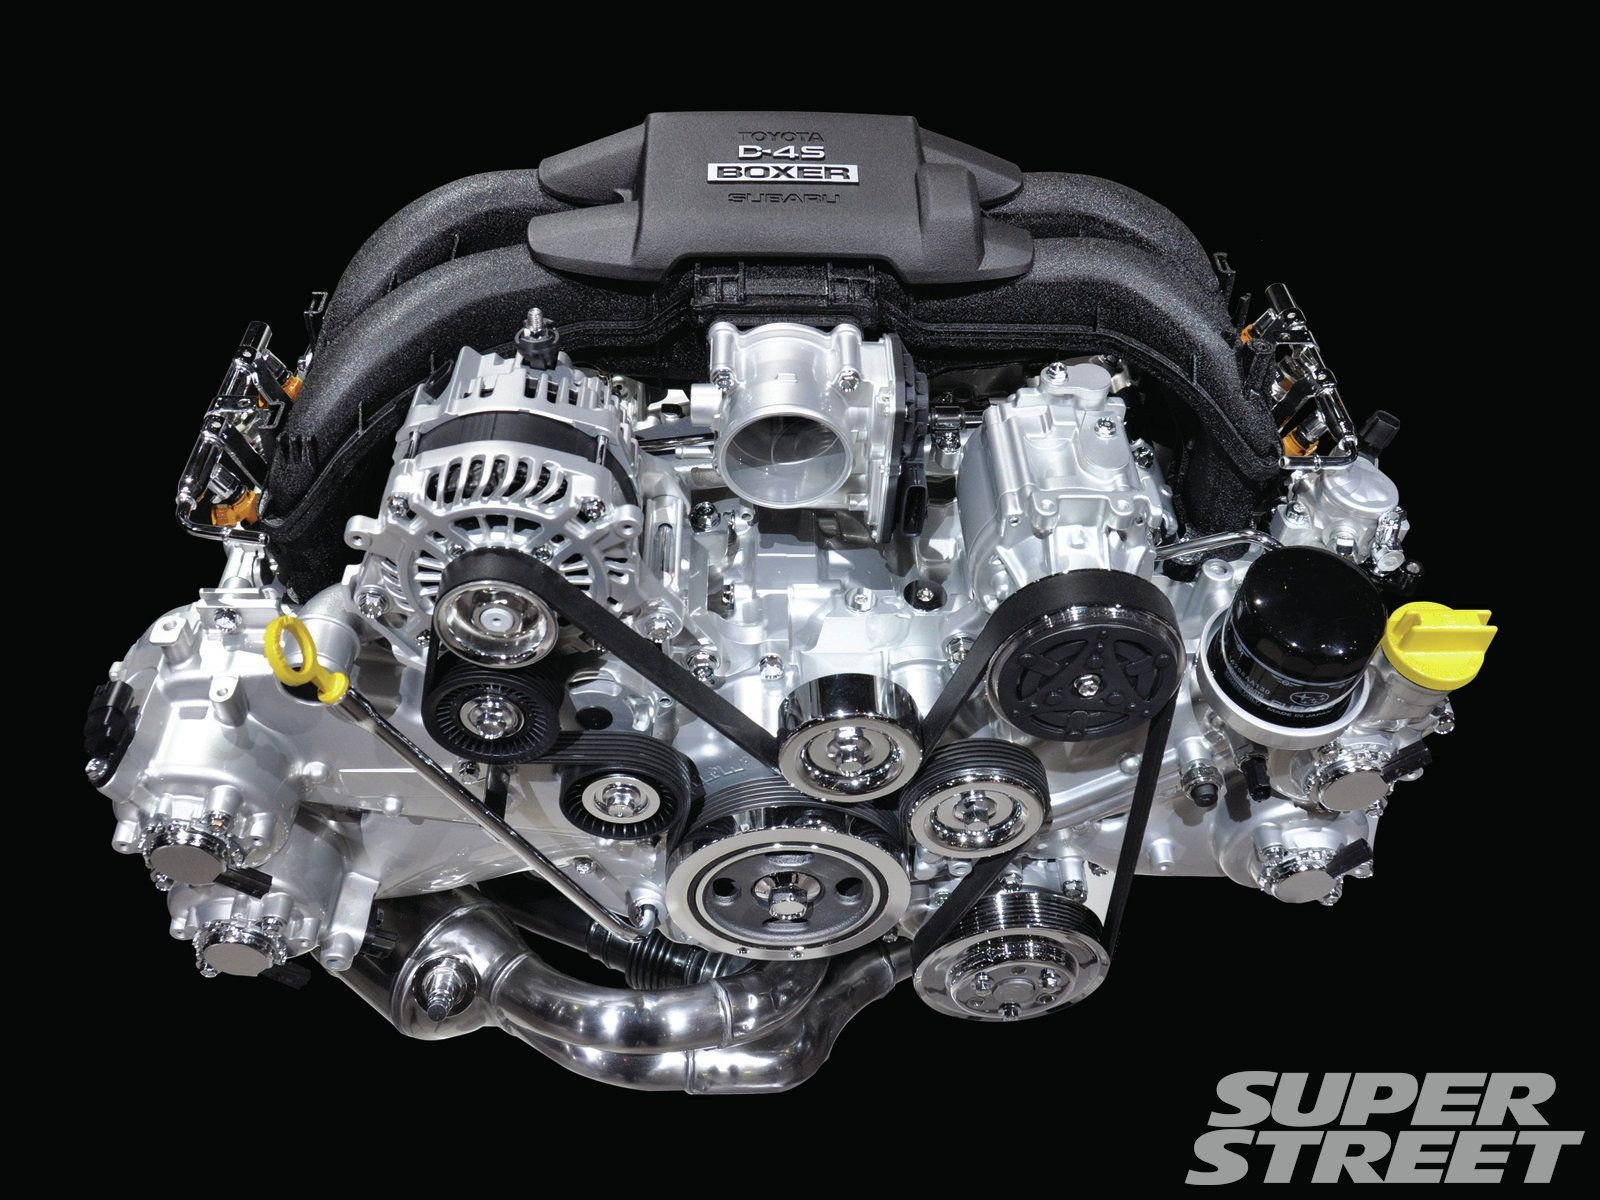 How Does A Motorcycle Engine Work Diagram How Boxer Engines Work Super Street Magazine Of How Does A Motorcycle Engine Work Diagram